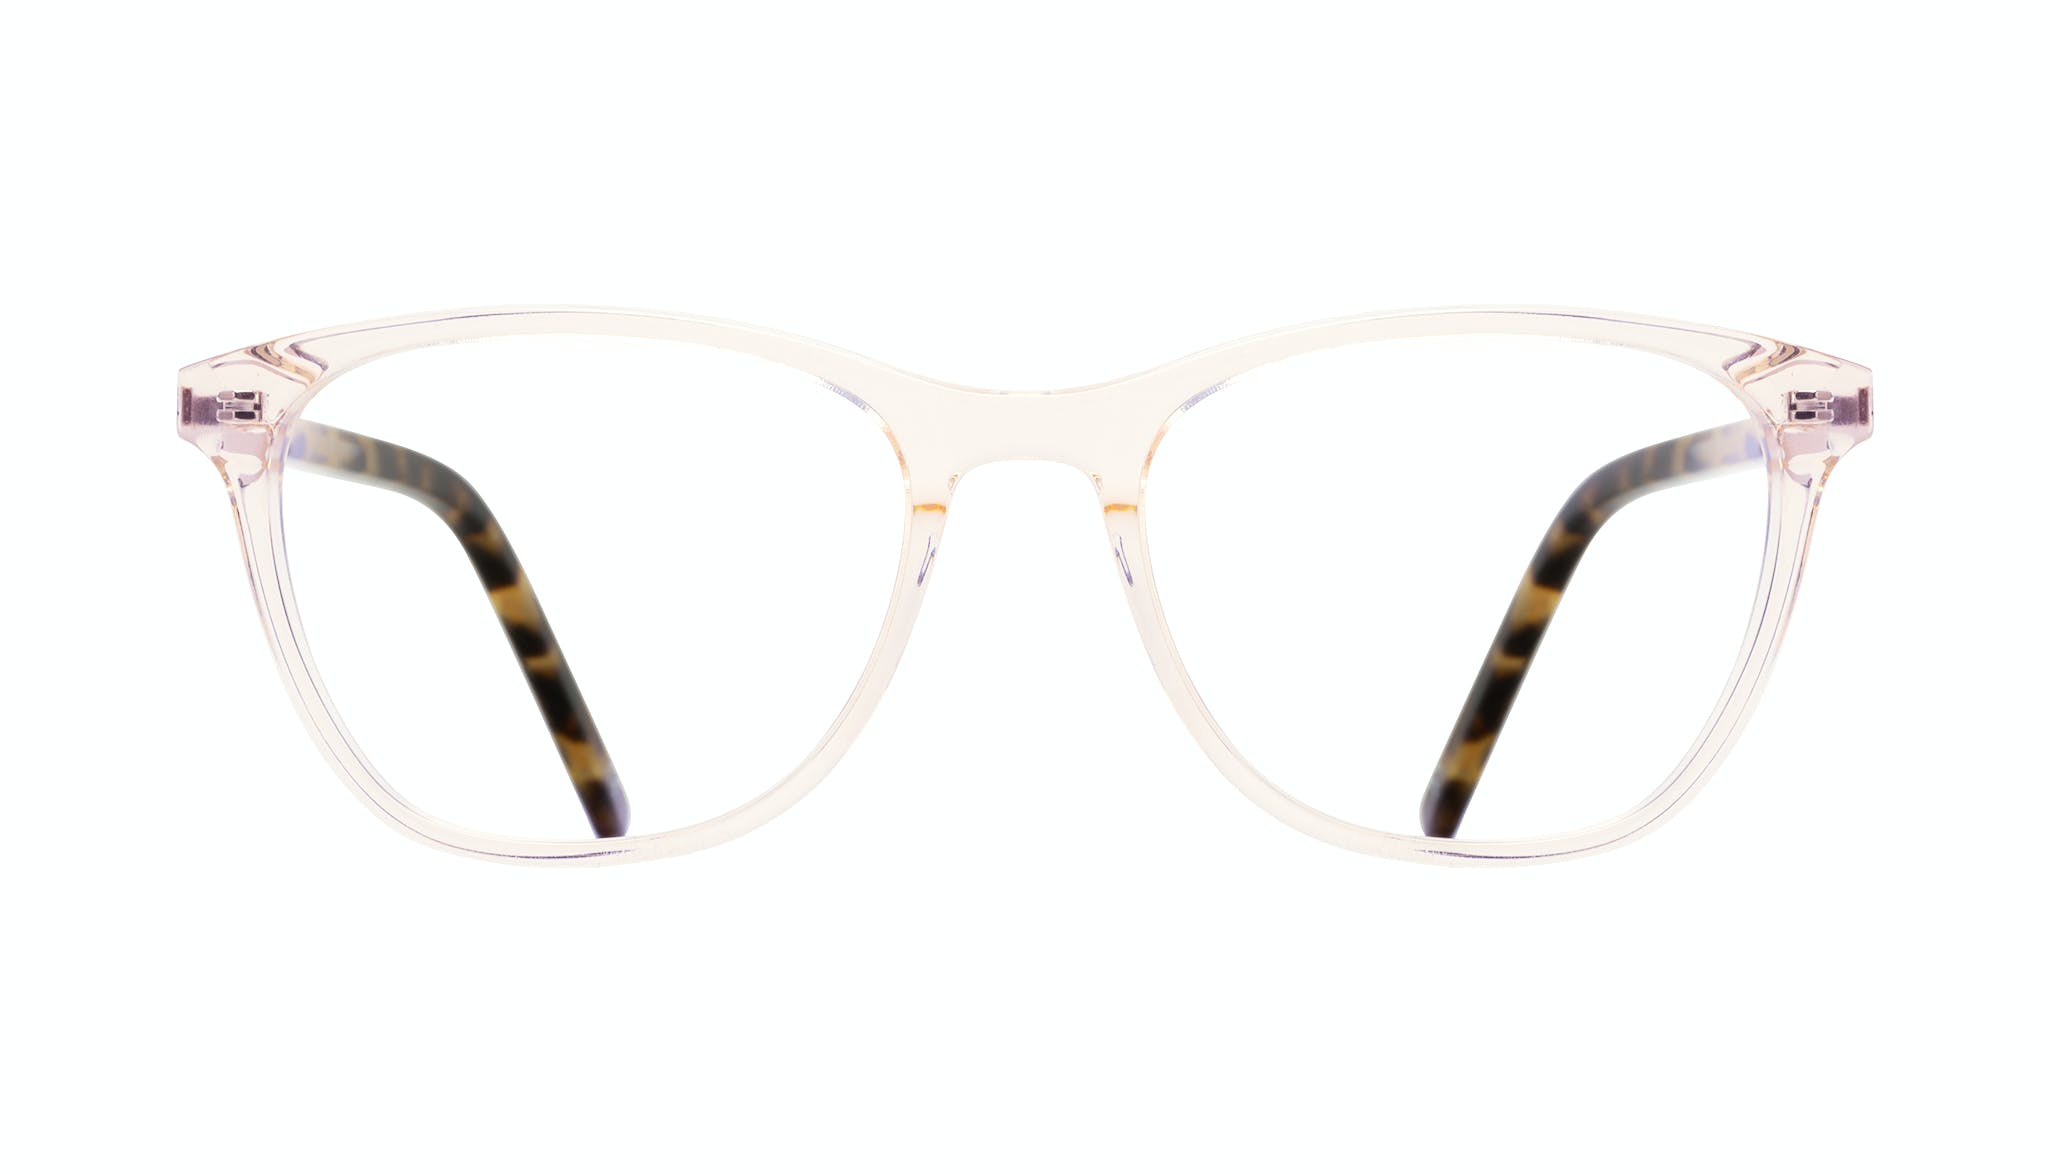 Affordable Fashion Glasses Rectangle Eyeglasses Women Folk Blond Tortoise